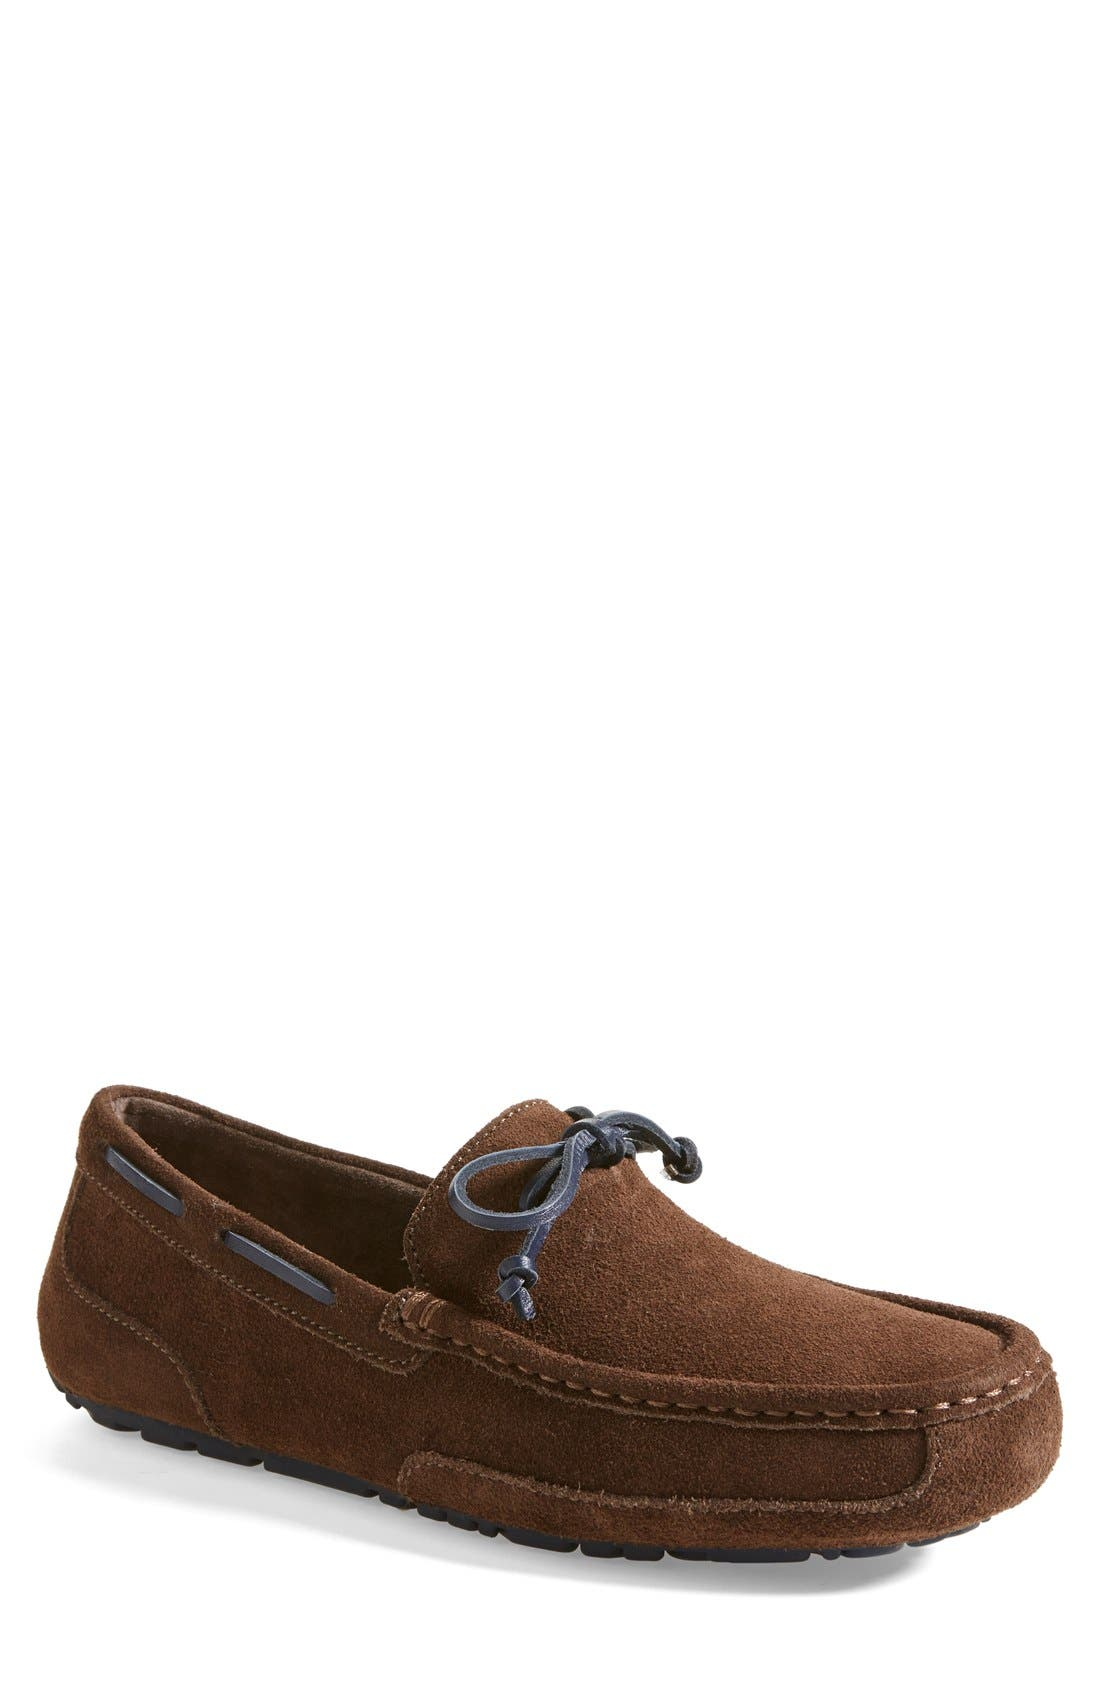 Alternate Image 1 Selected - UGG® 'Chester' Driving Loafer (Men)